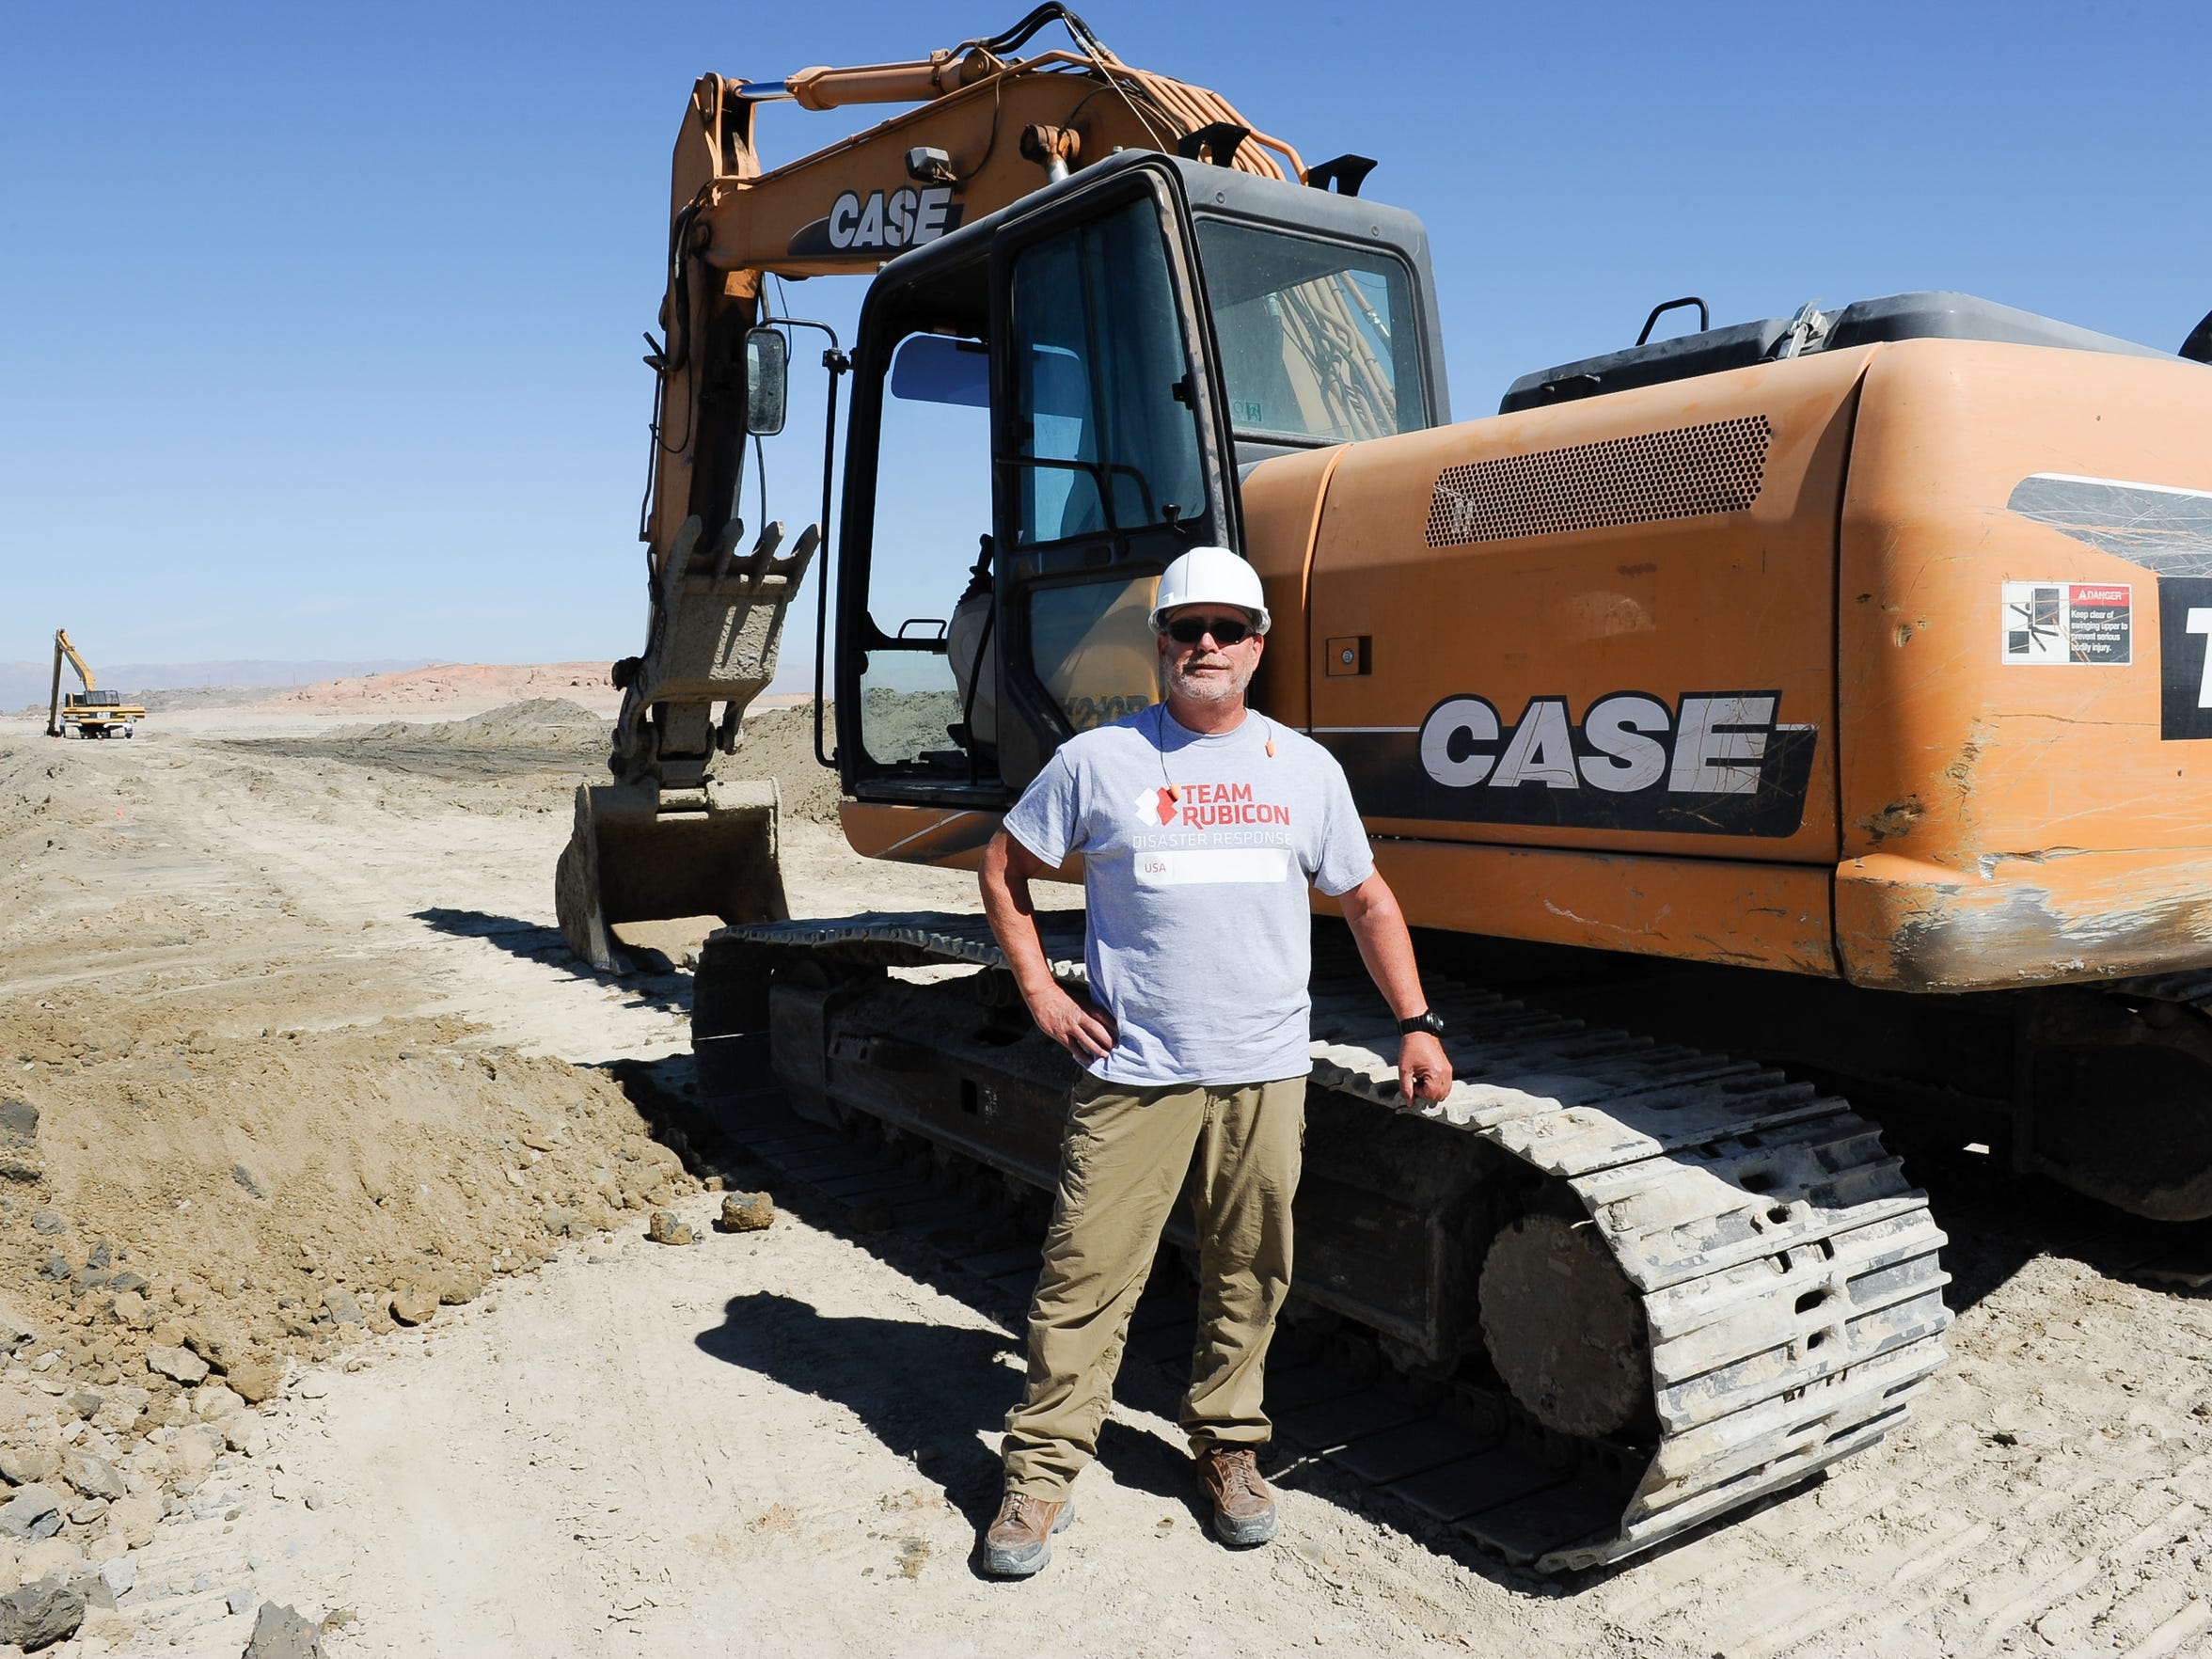 Volunteer Jim Simmons poses next to an excavator at